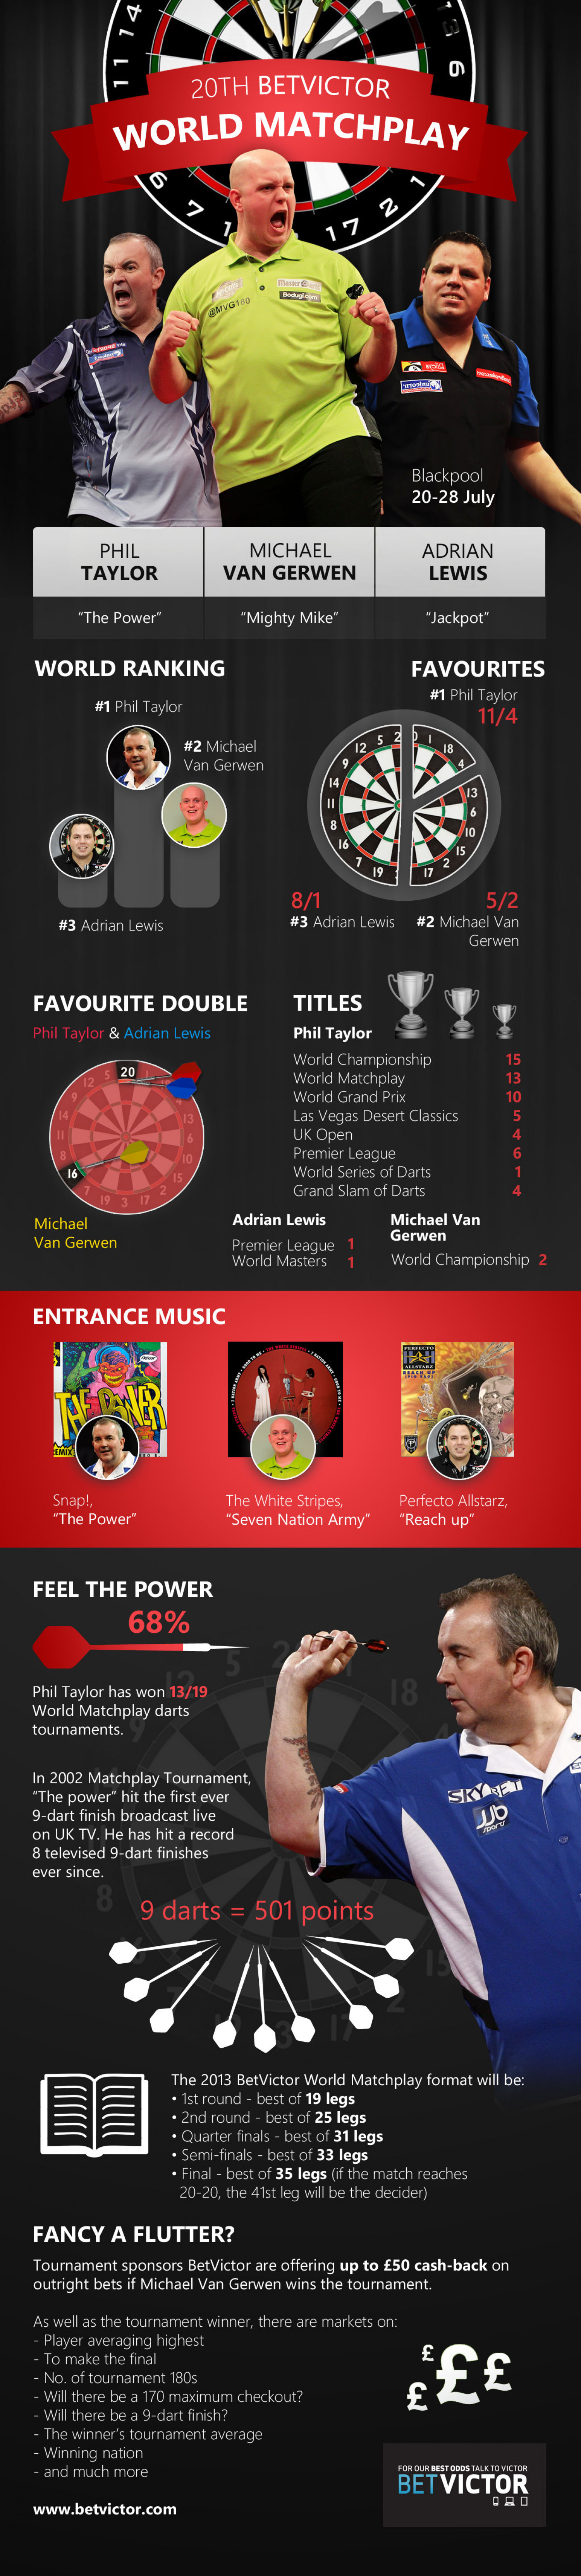 20th World Matchplay Darts Infographic